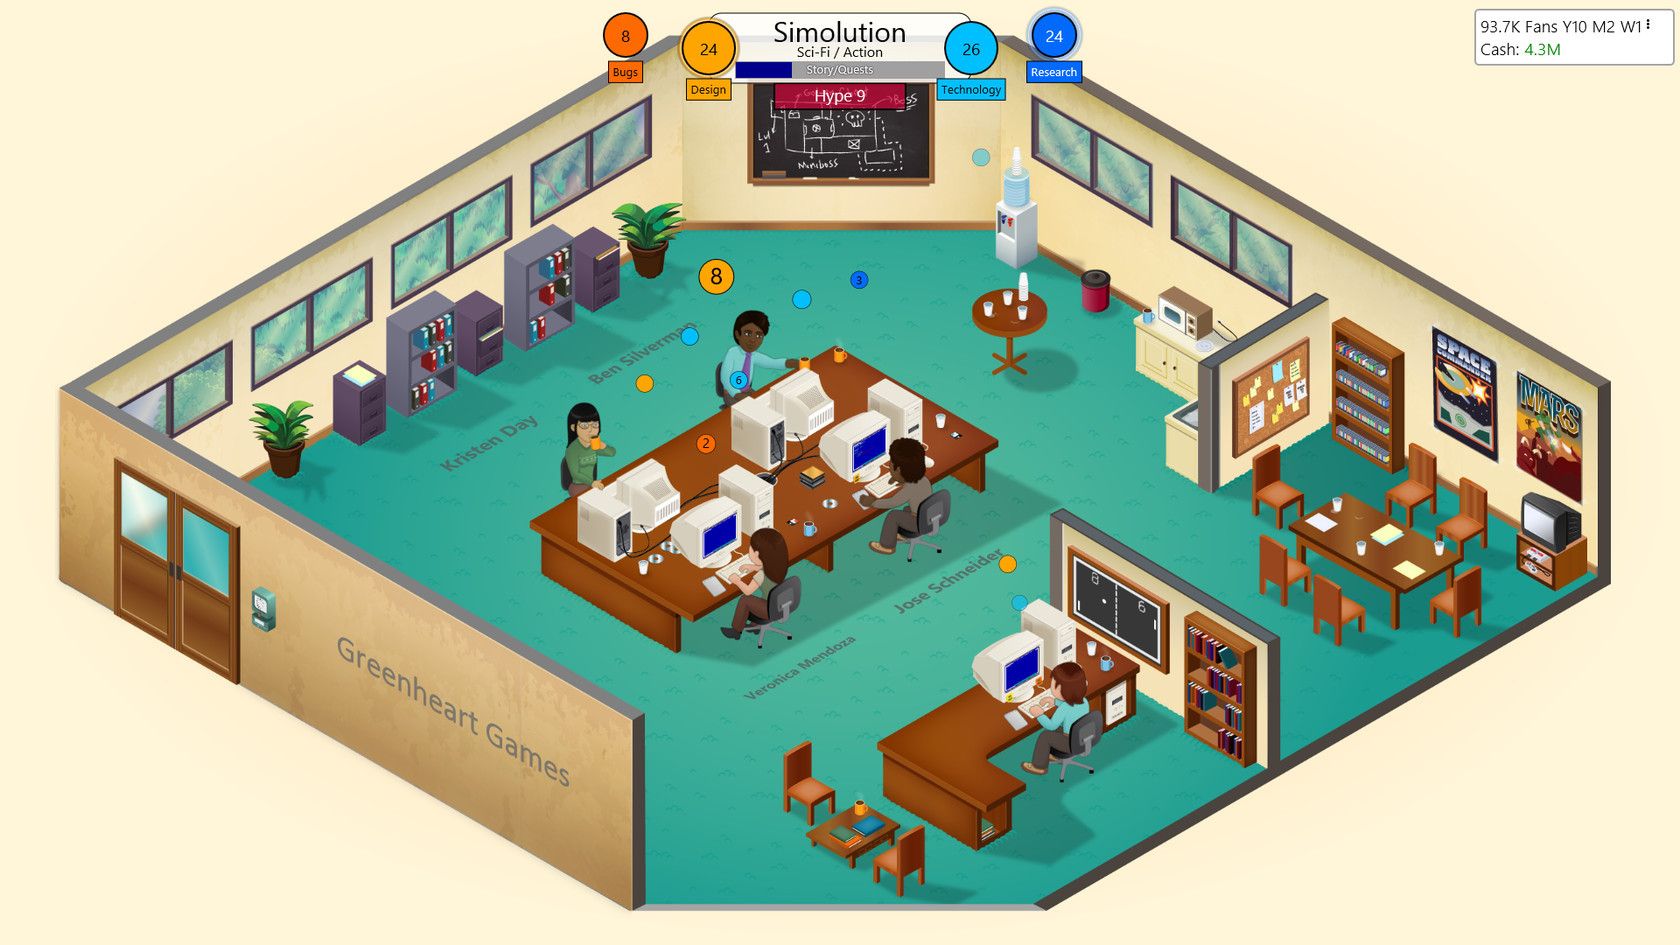 Game Dev Tycoon offline sim strategy video game.